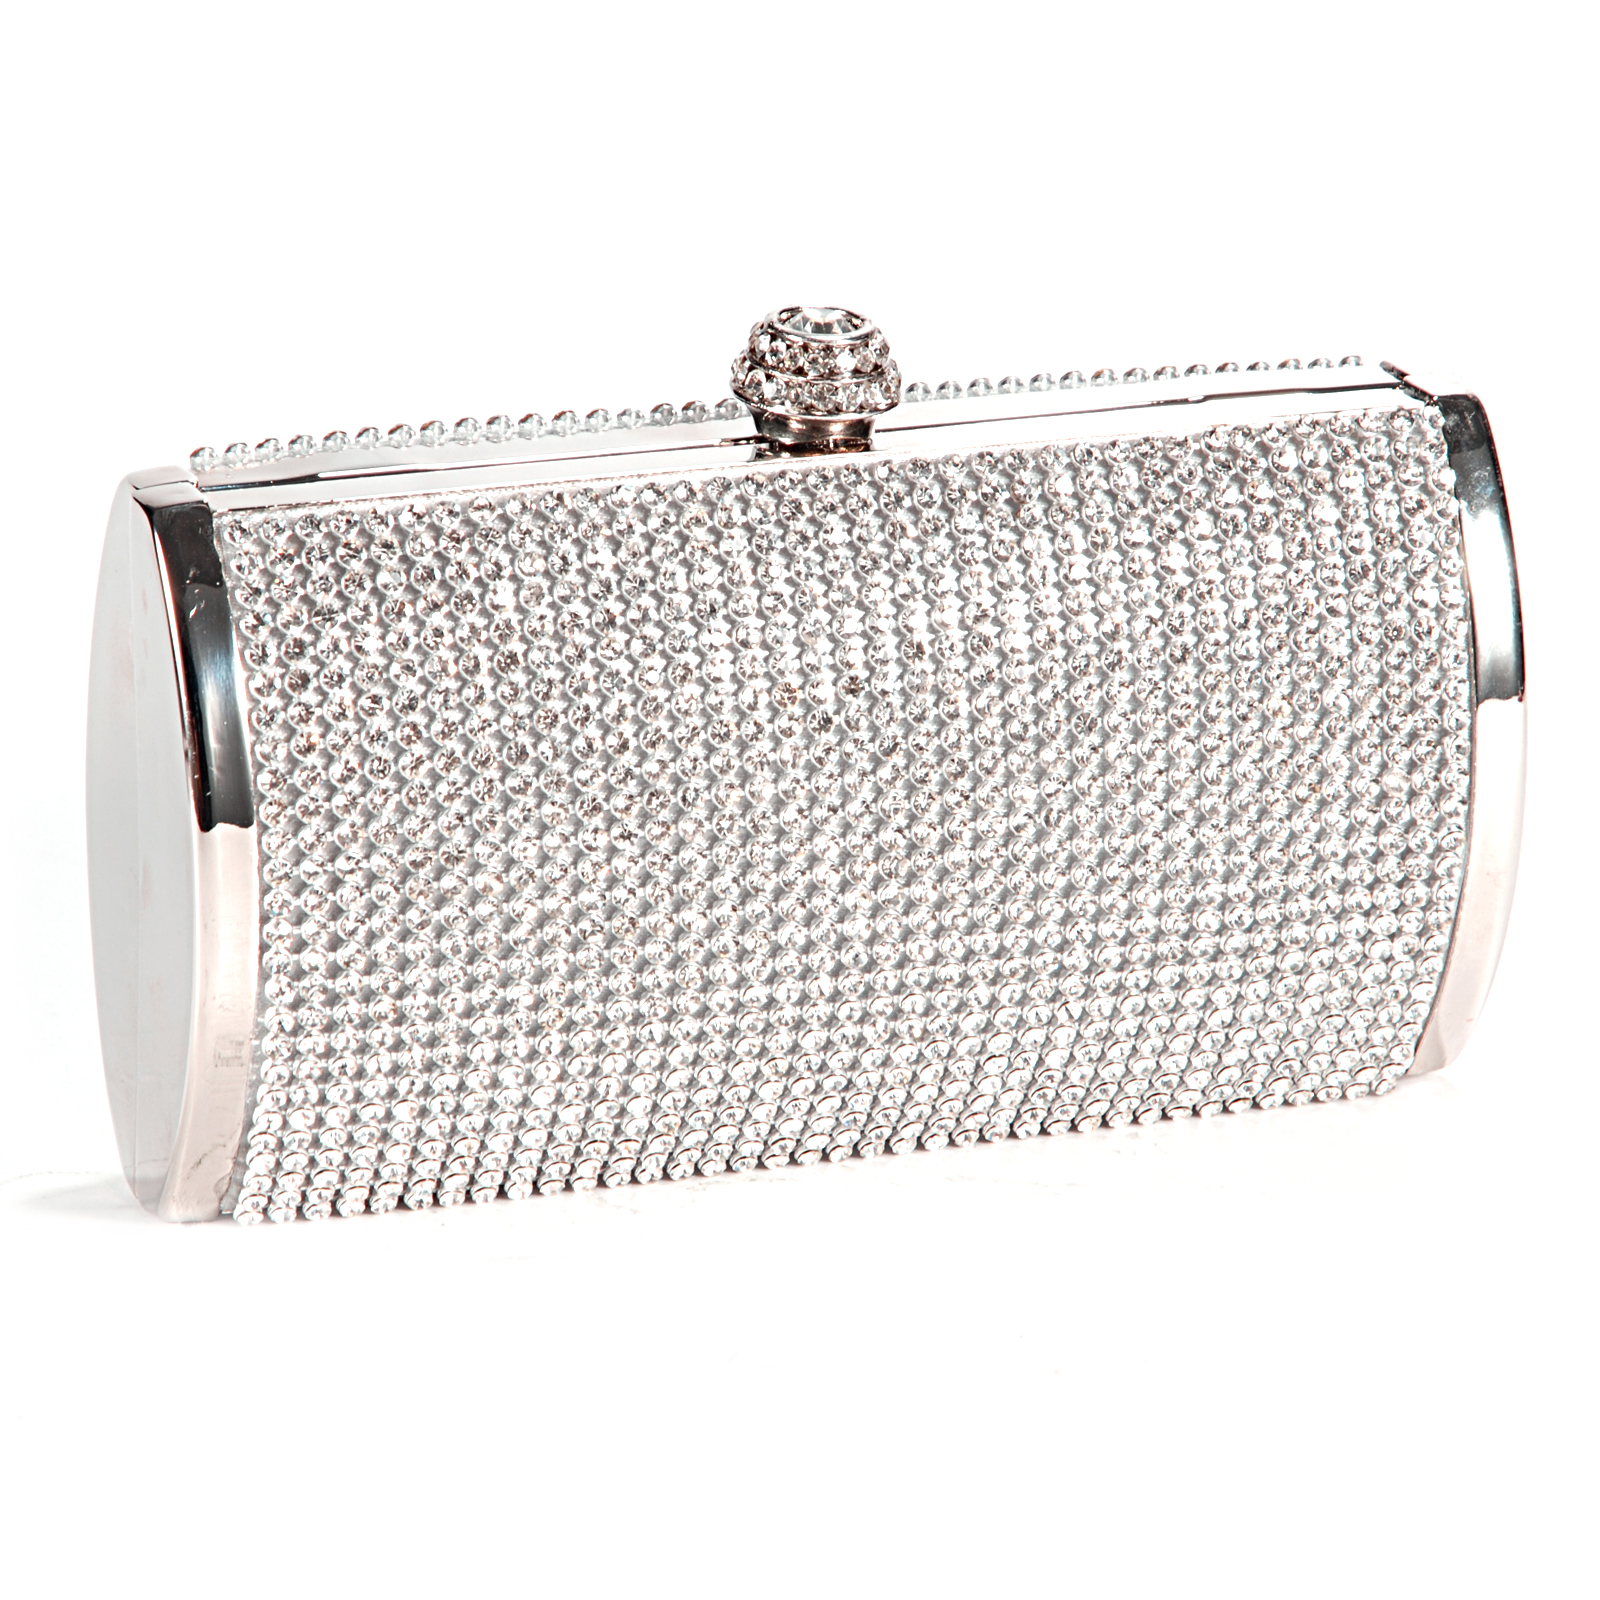 Silver Sparkly Diamante Crystal Evening Clutch Bag Wedding Bridal Prom Handbag | EBay